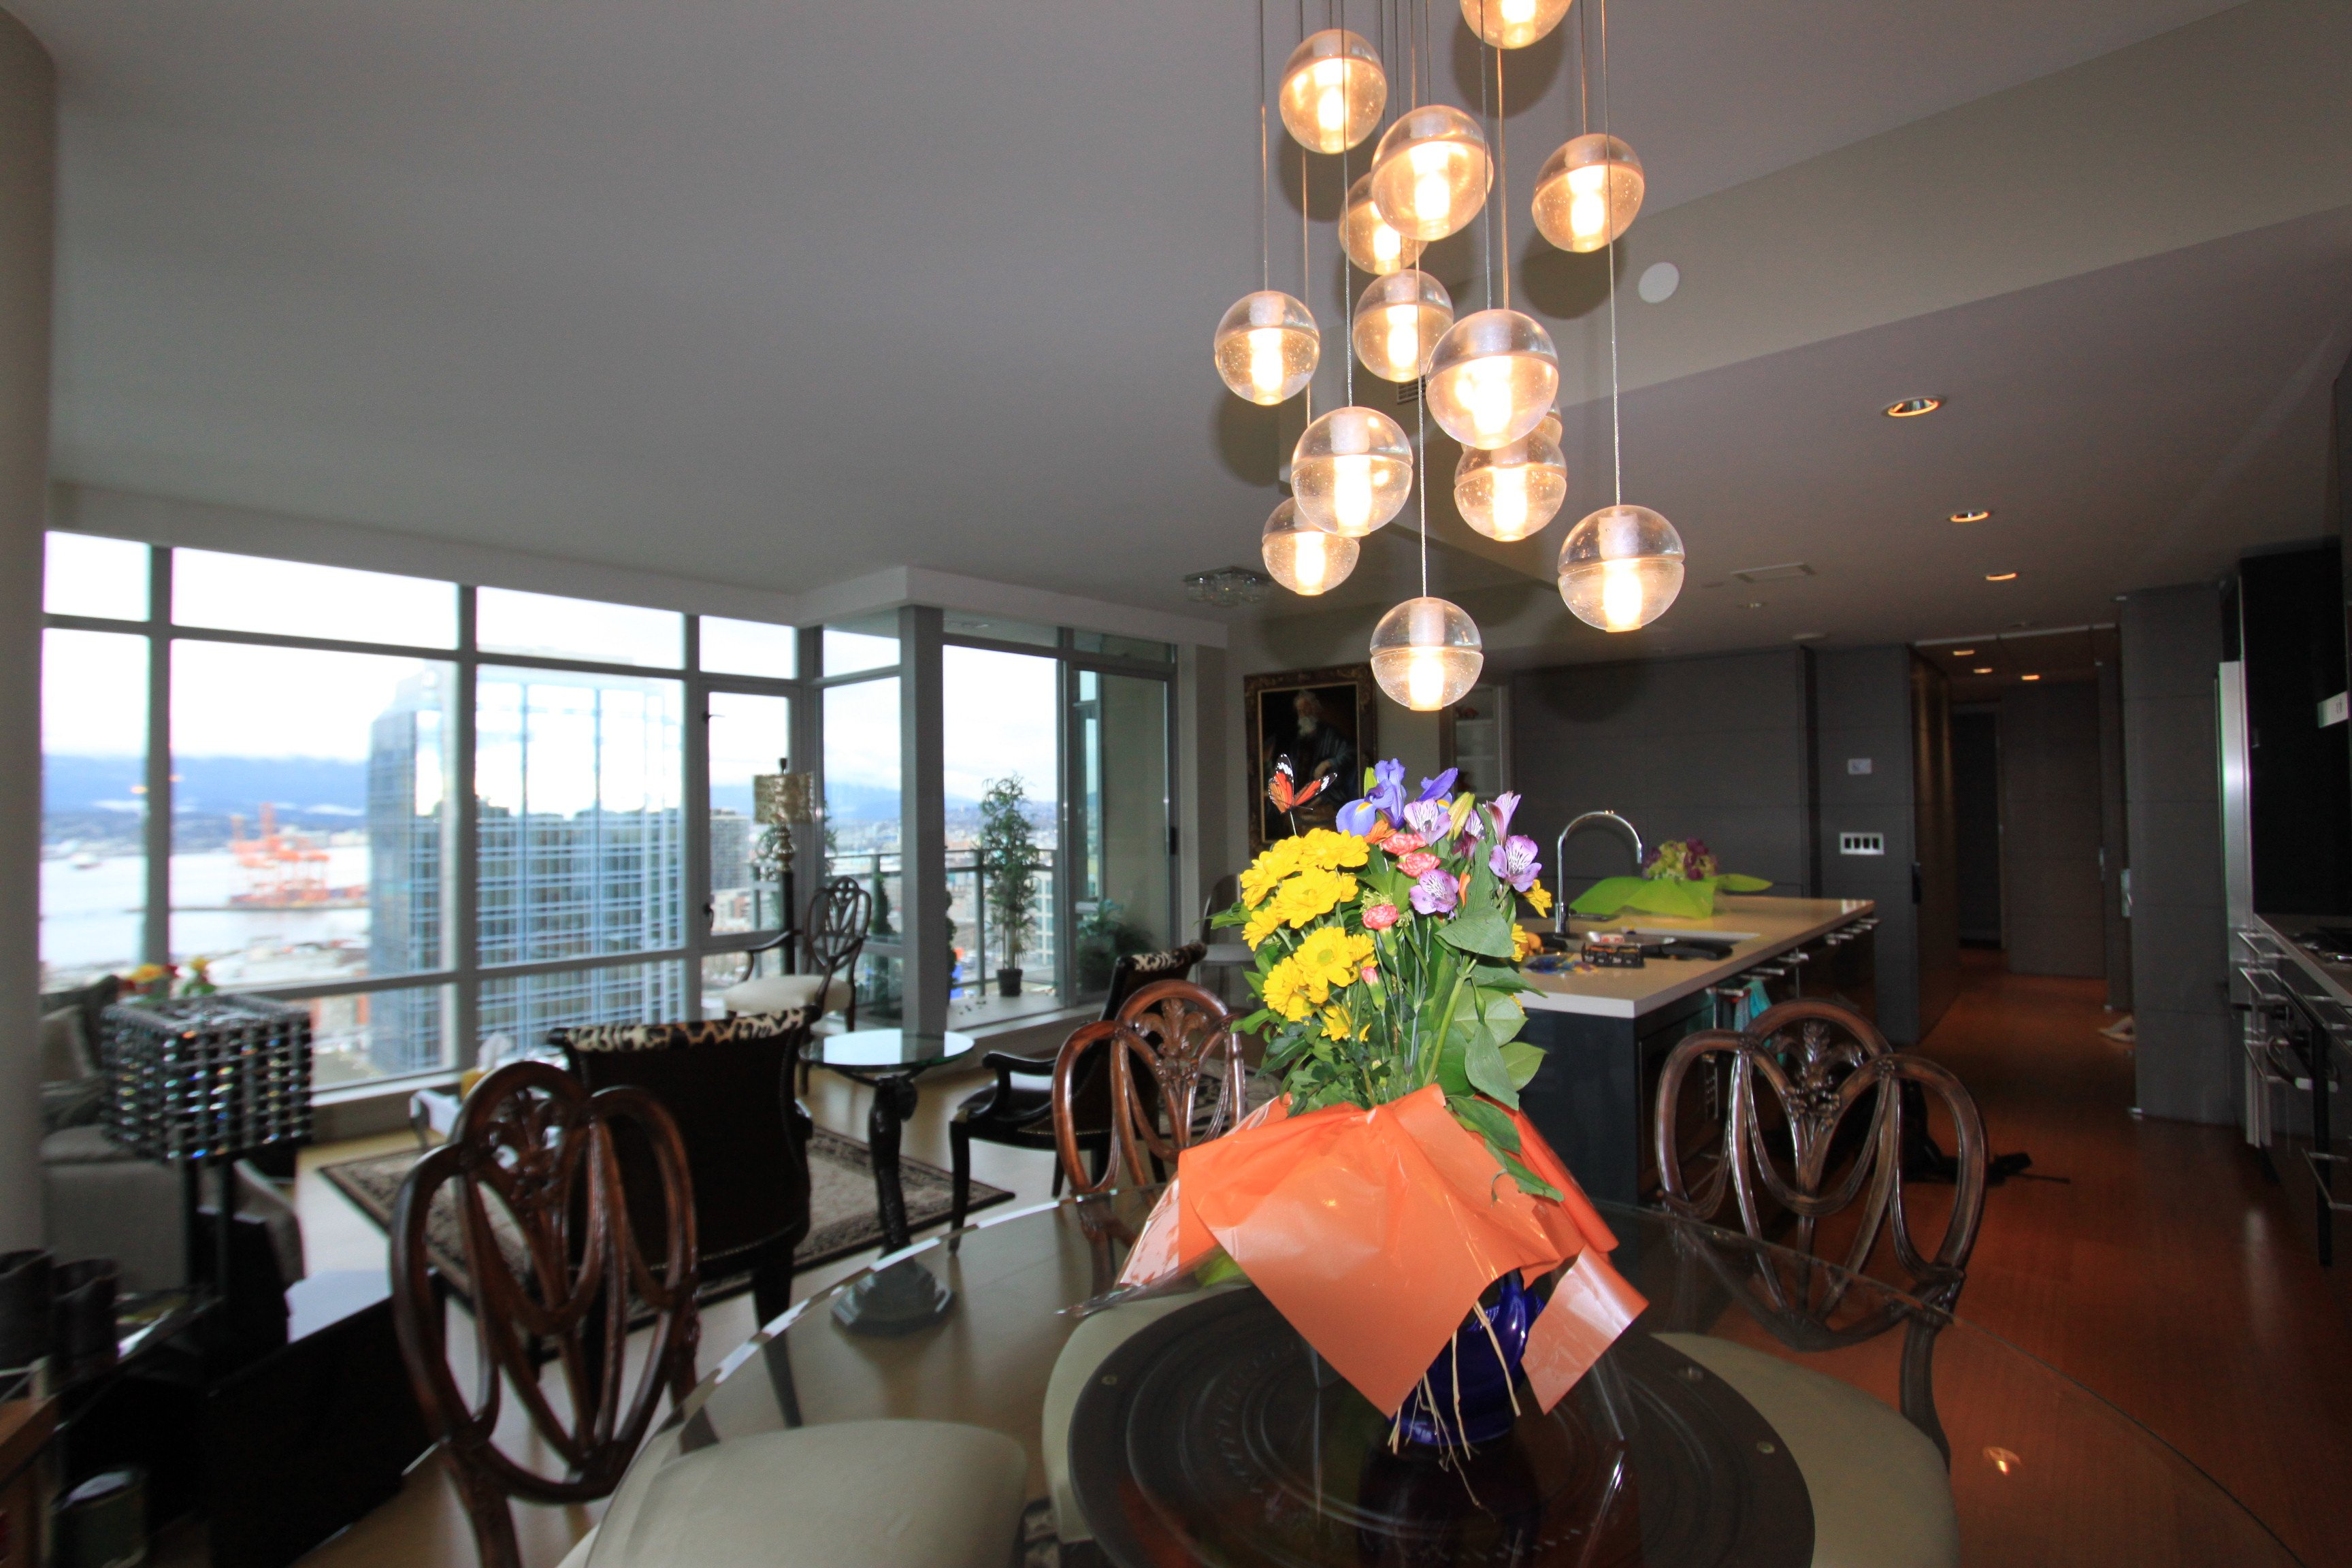 view of dining room in a L'hermitage 2 bedroom and den condo rental in Vancouver, Canada presented by Rebecca Punch.